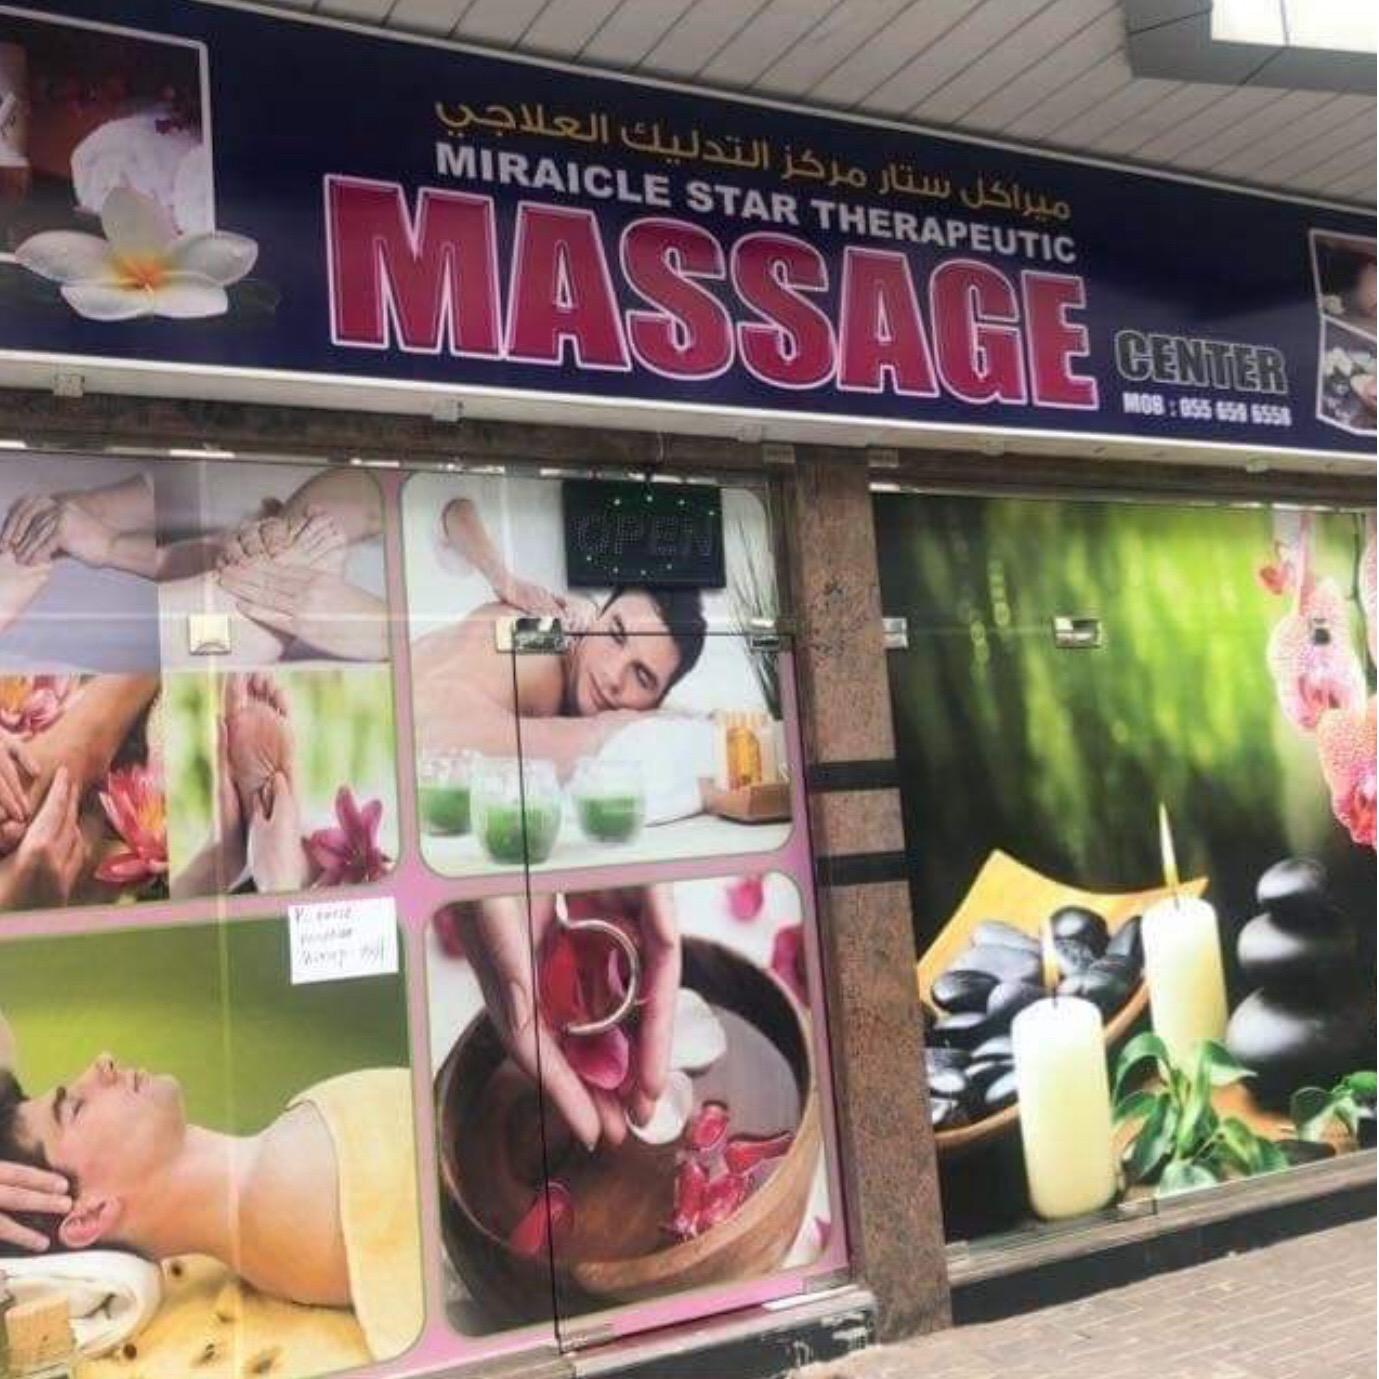 Miracle Star Therapeutic Massage Center